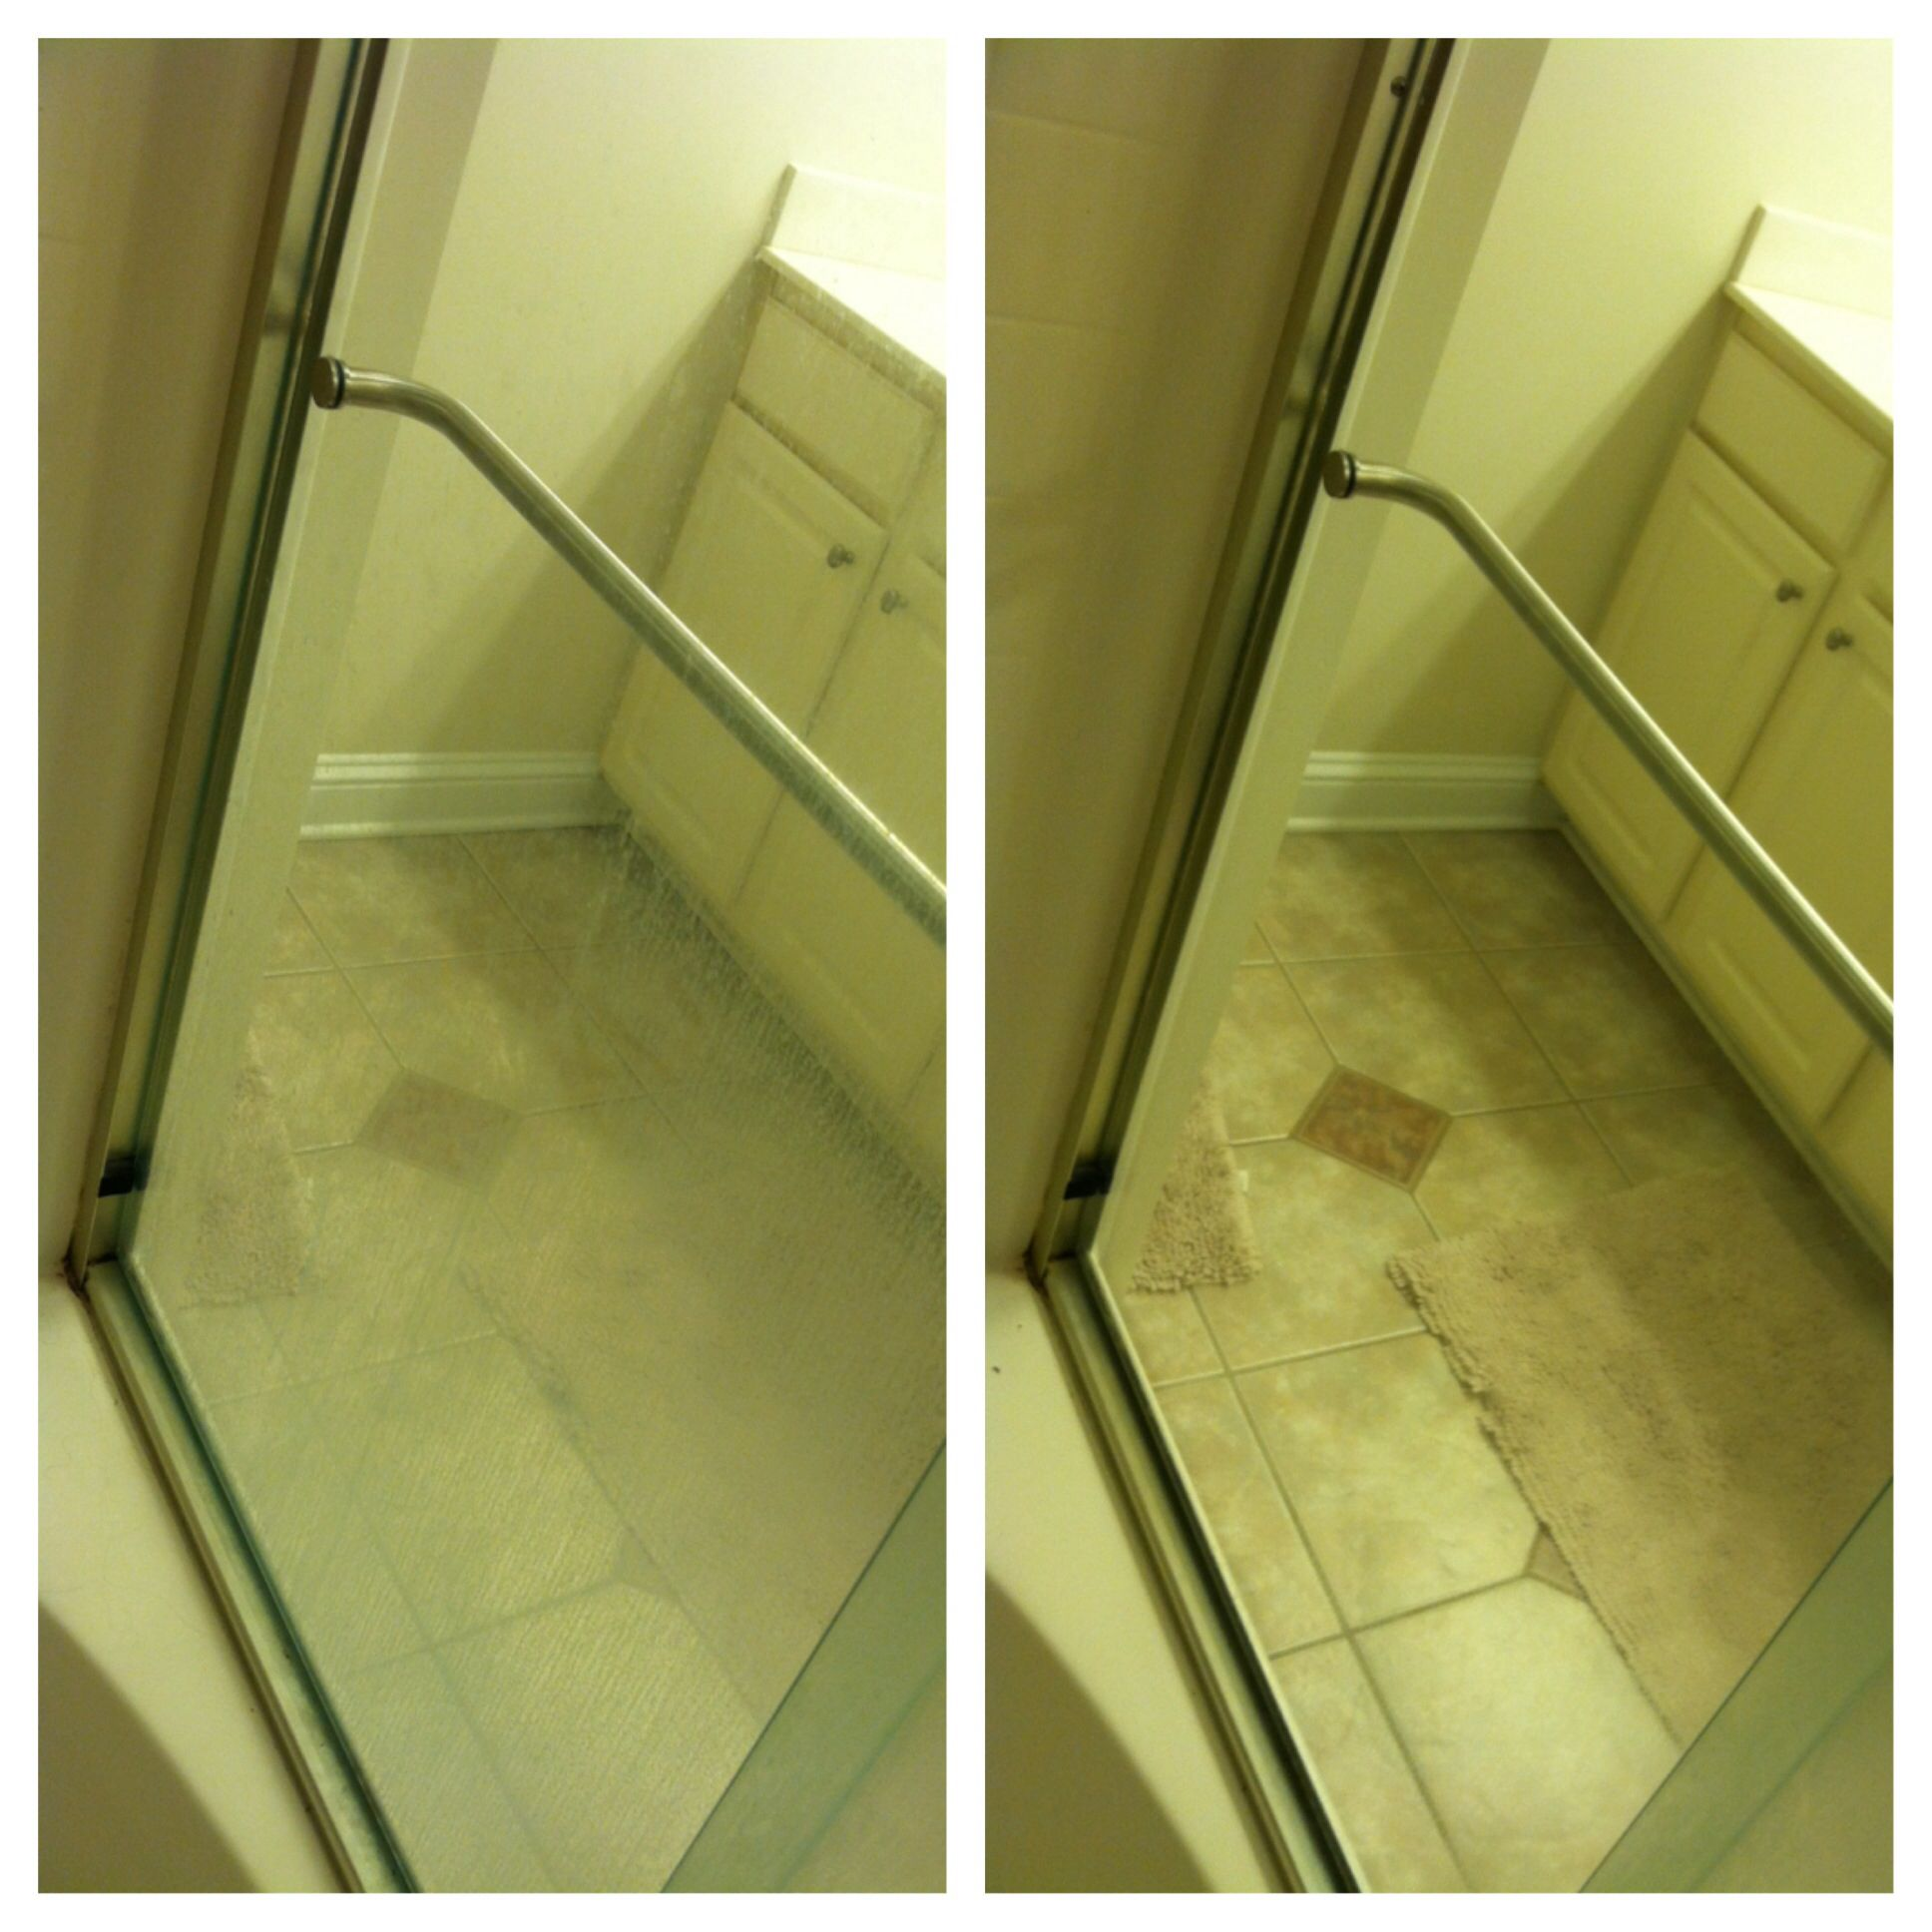 My glass shower door before and after cleaning with a wet enviro ...